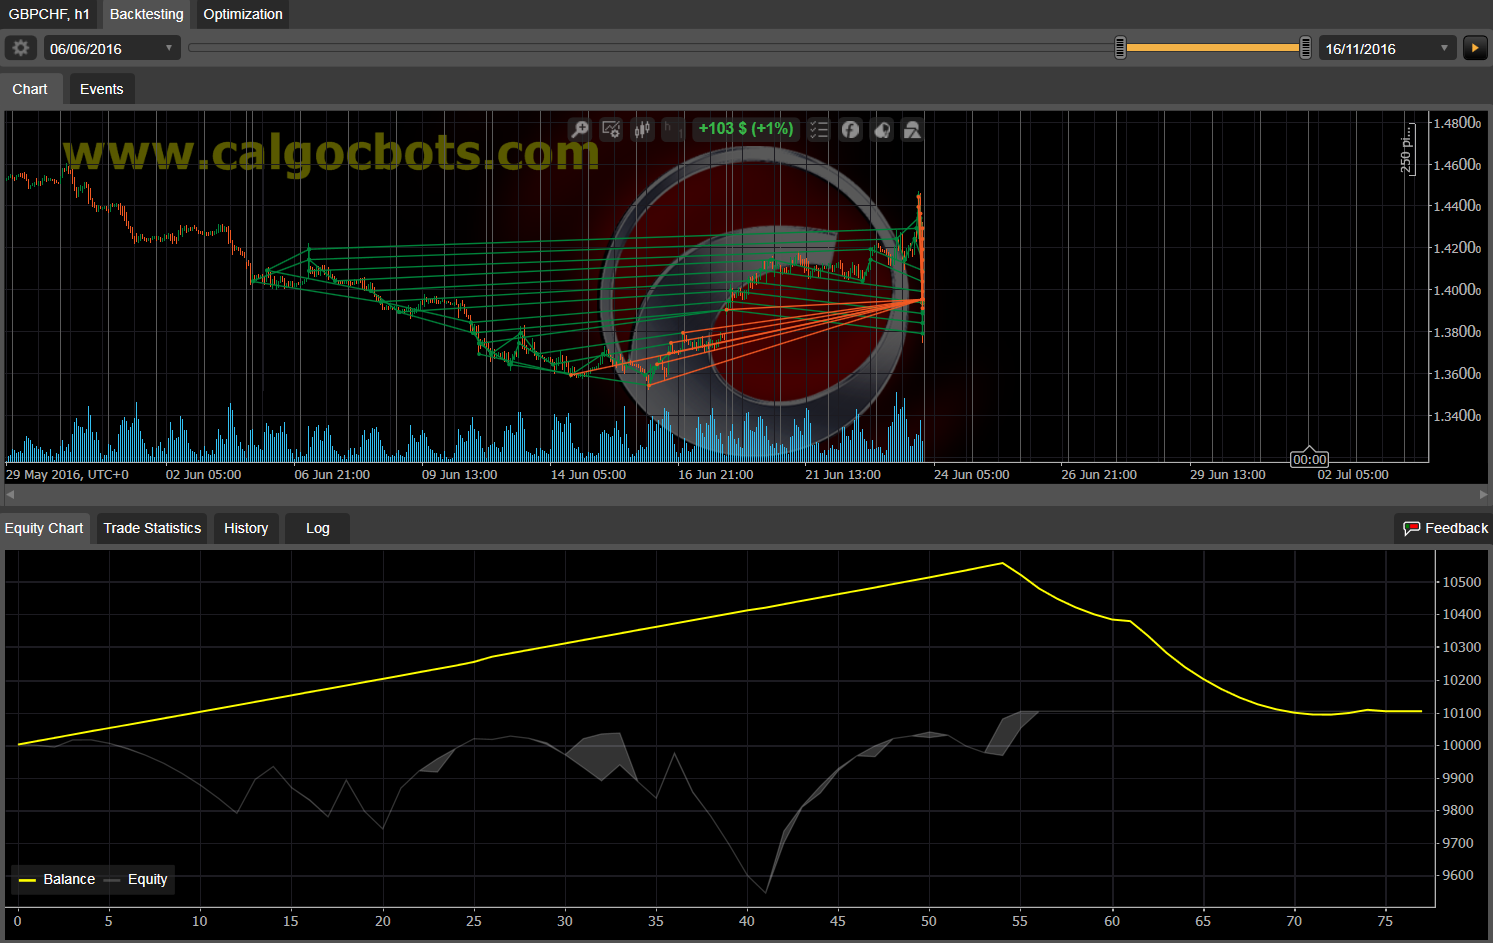 Dual Grid Hedge GBP CHF 1h cAlgo cBots cTrader 100 50 100 - 11